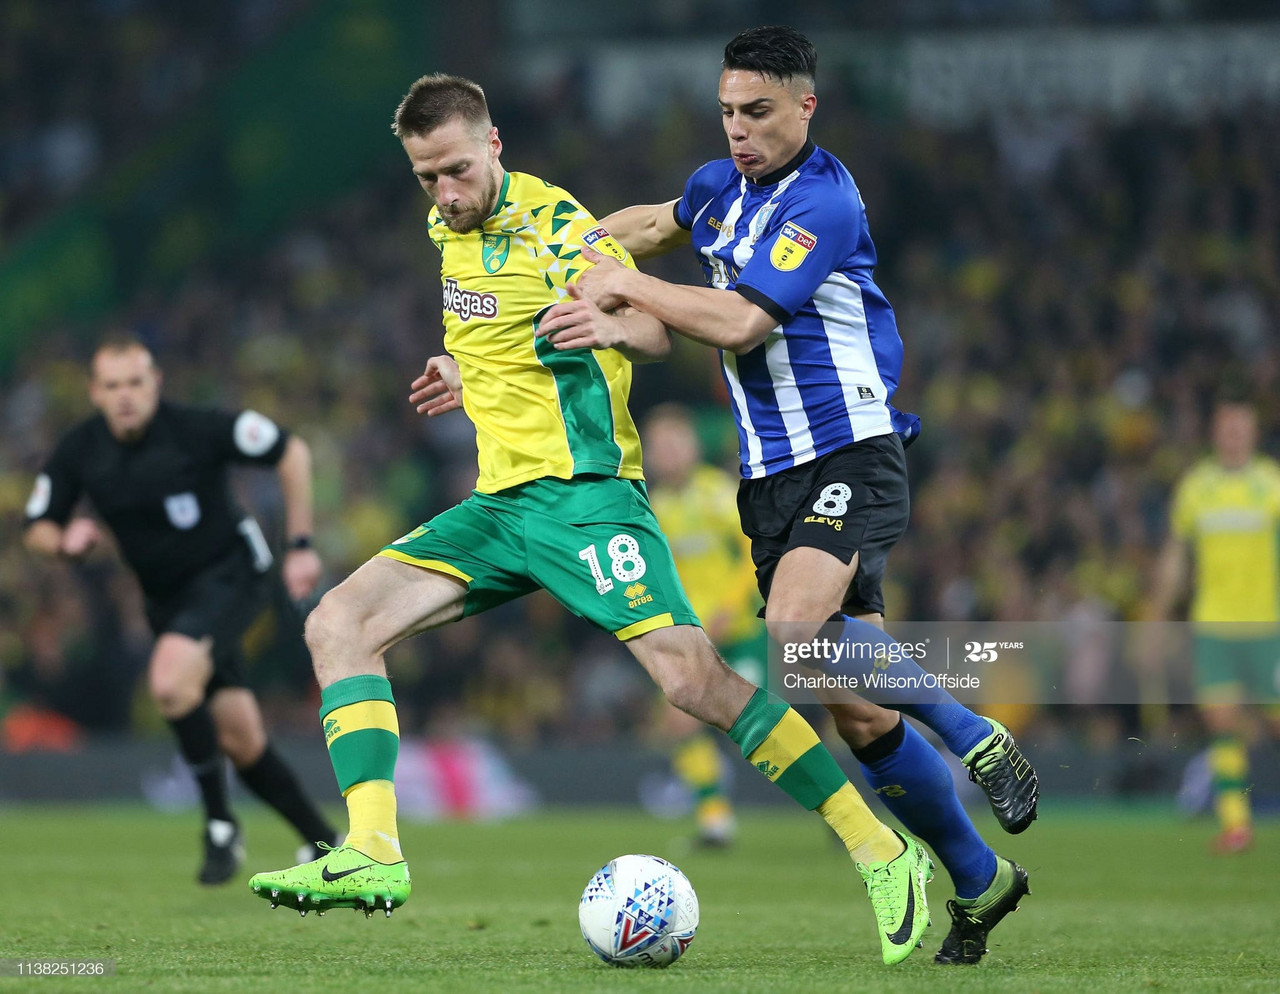 Norwich City vs Sheffield Wednesday preview: How to watch, kick-off time, predicted lineups and ones to watch